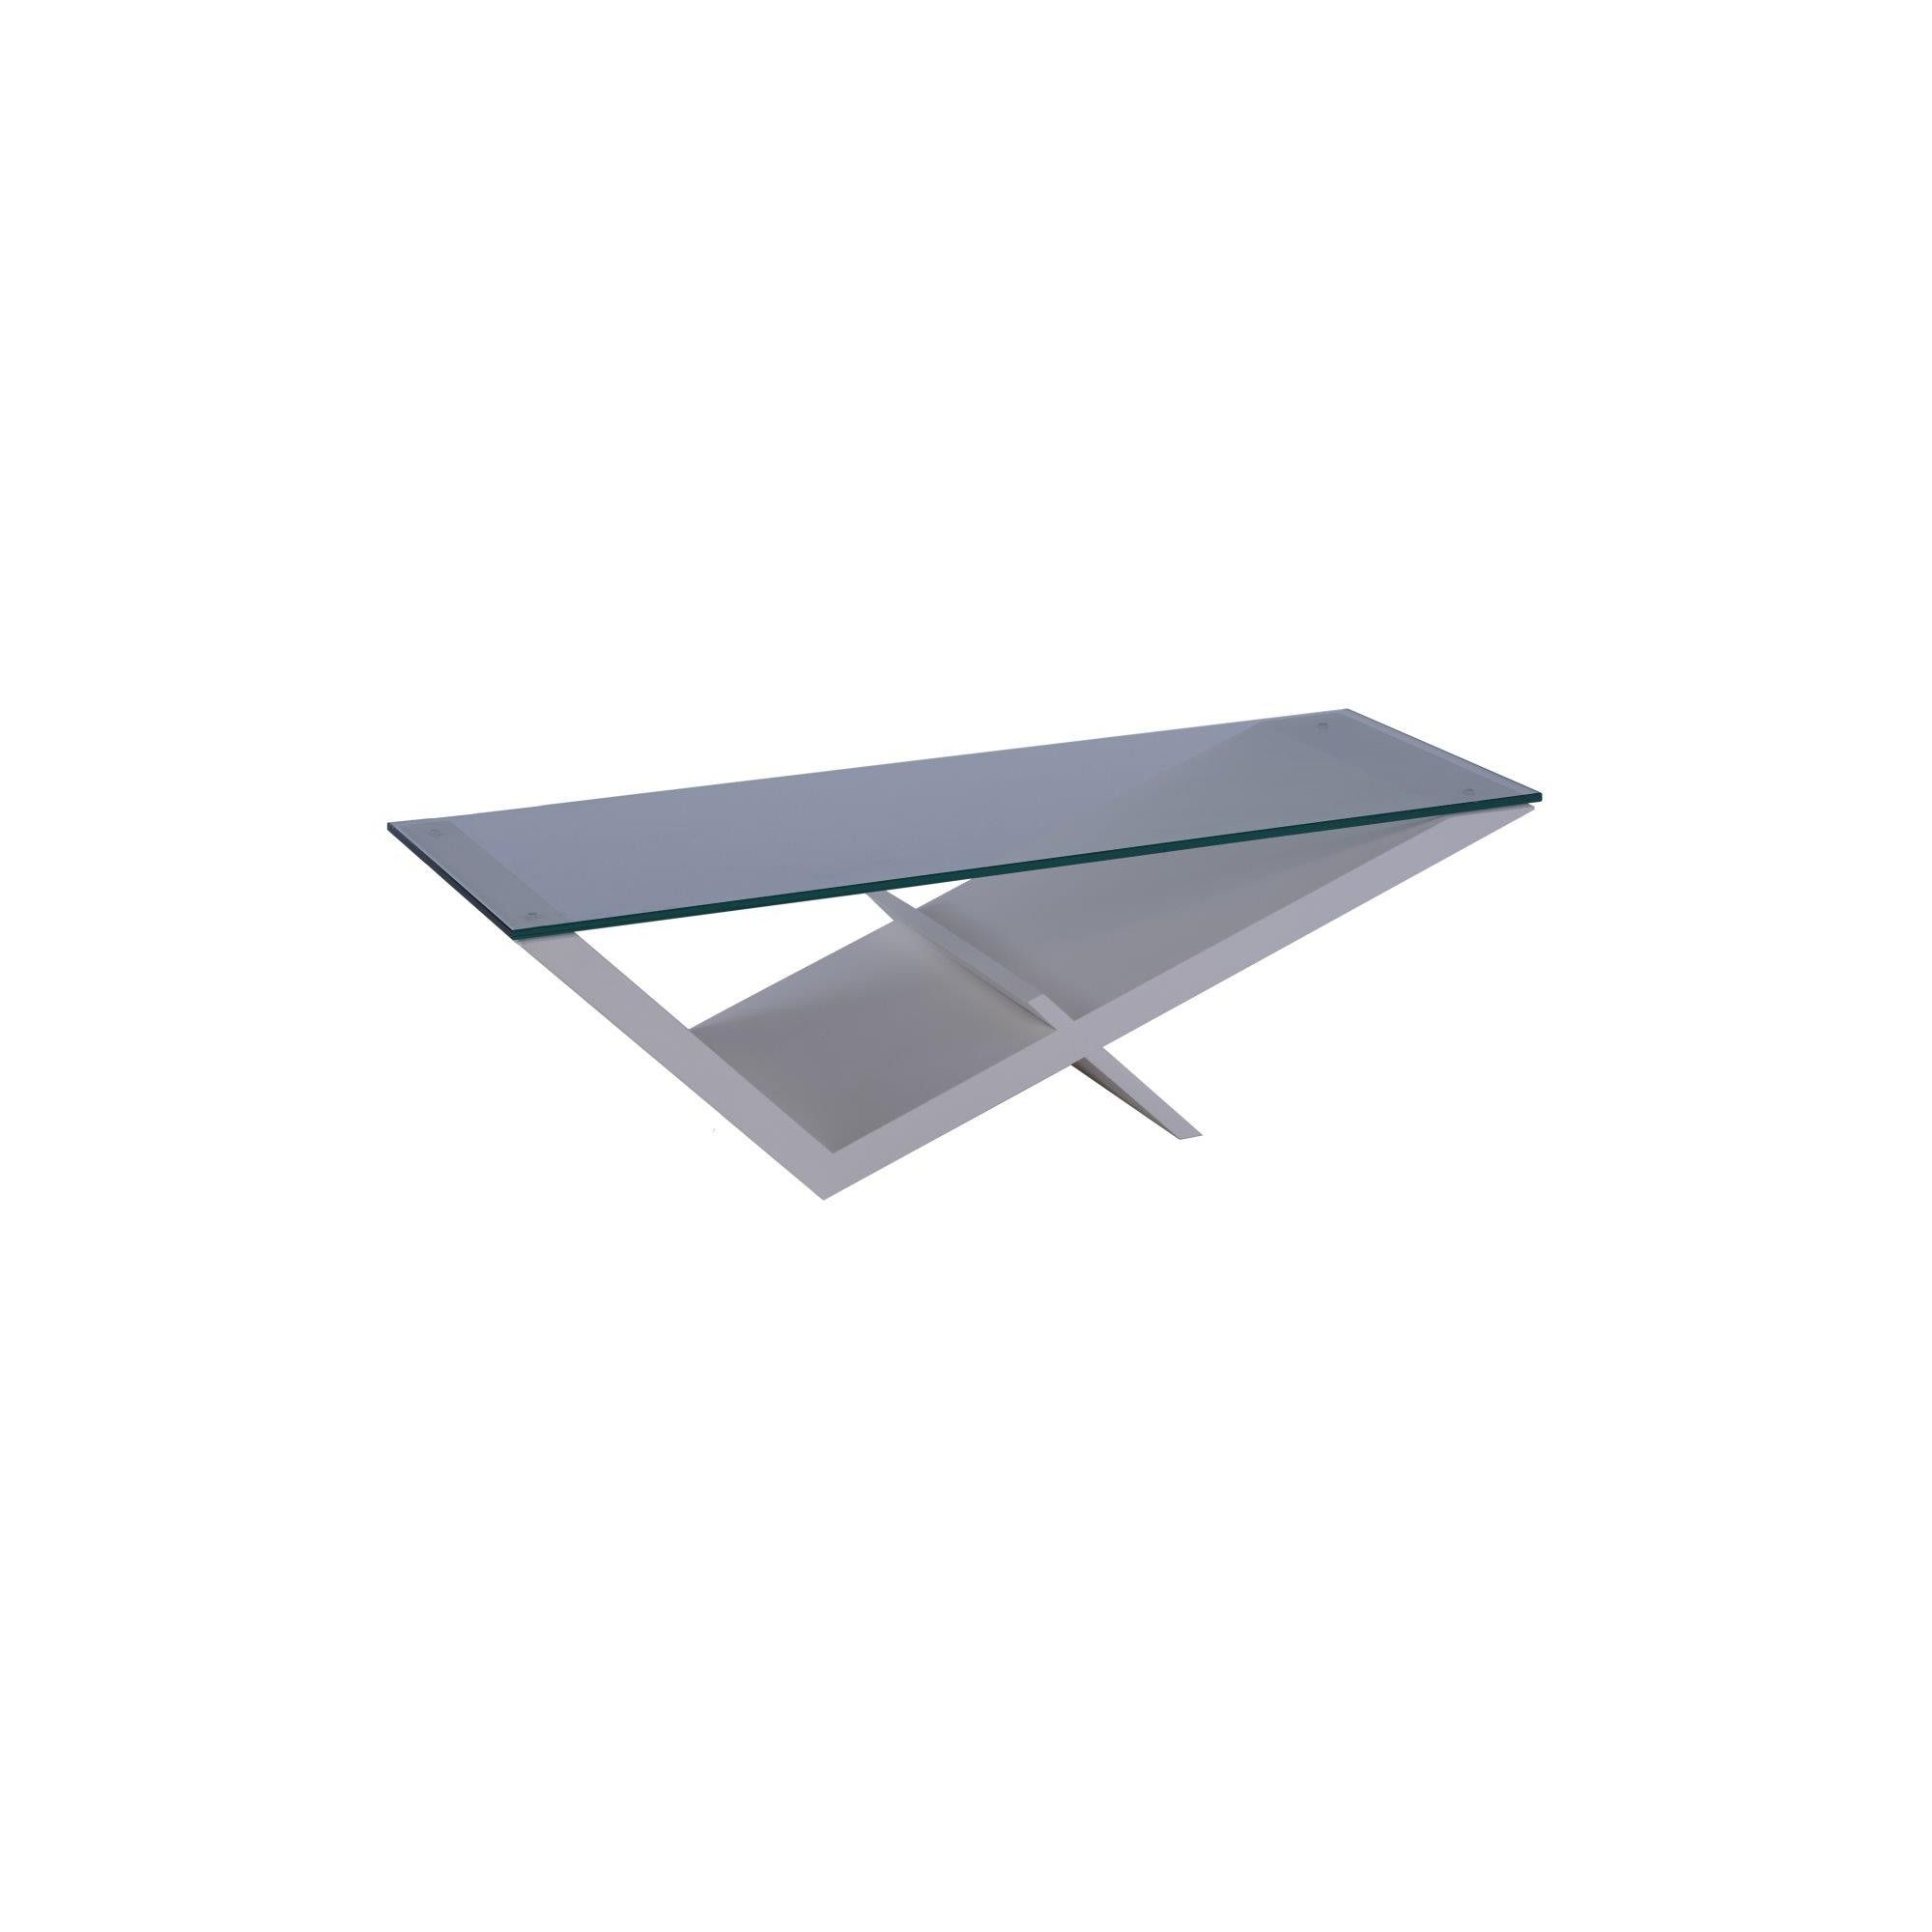 Gillmore Space Gerrit Coffee Table - White Lacquer (Matt) at Tesco Direct